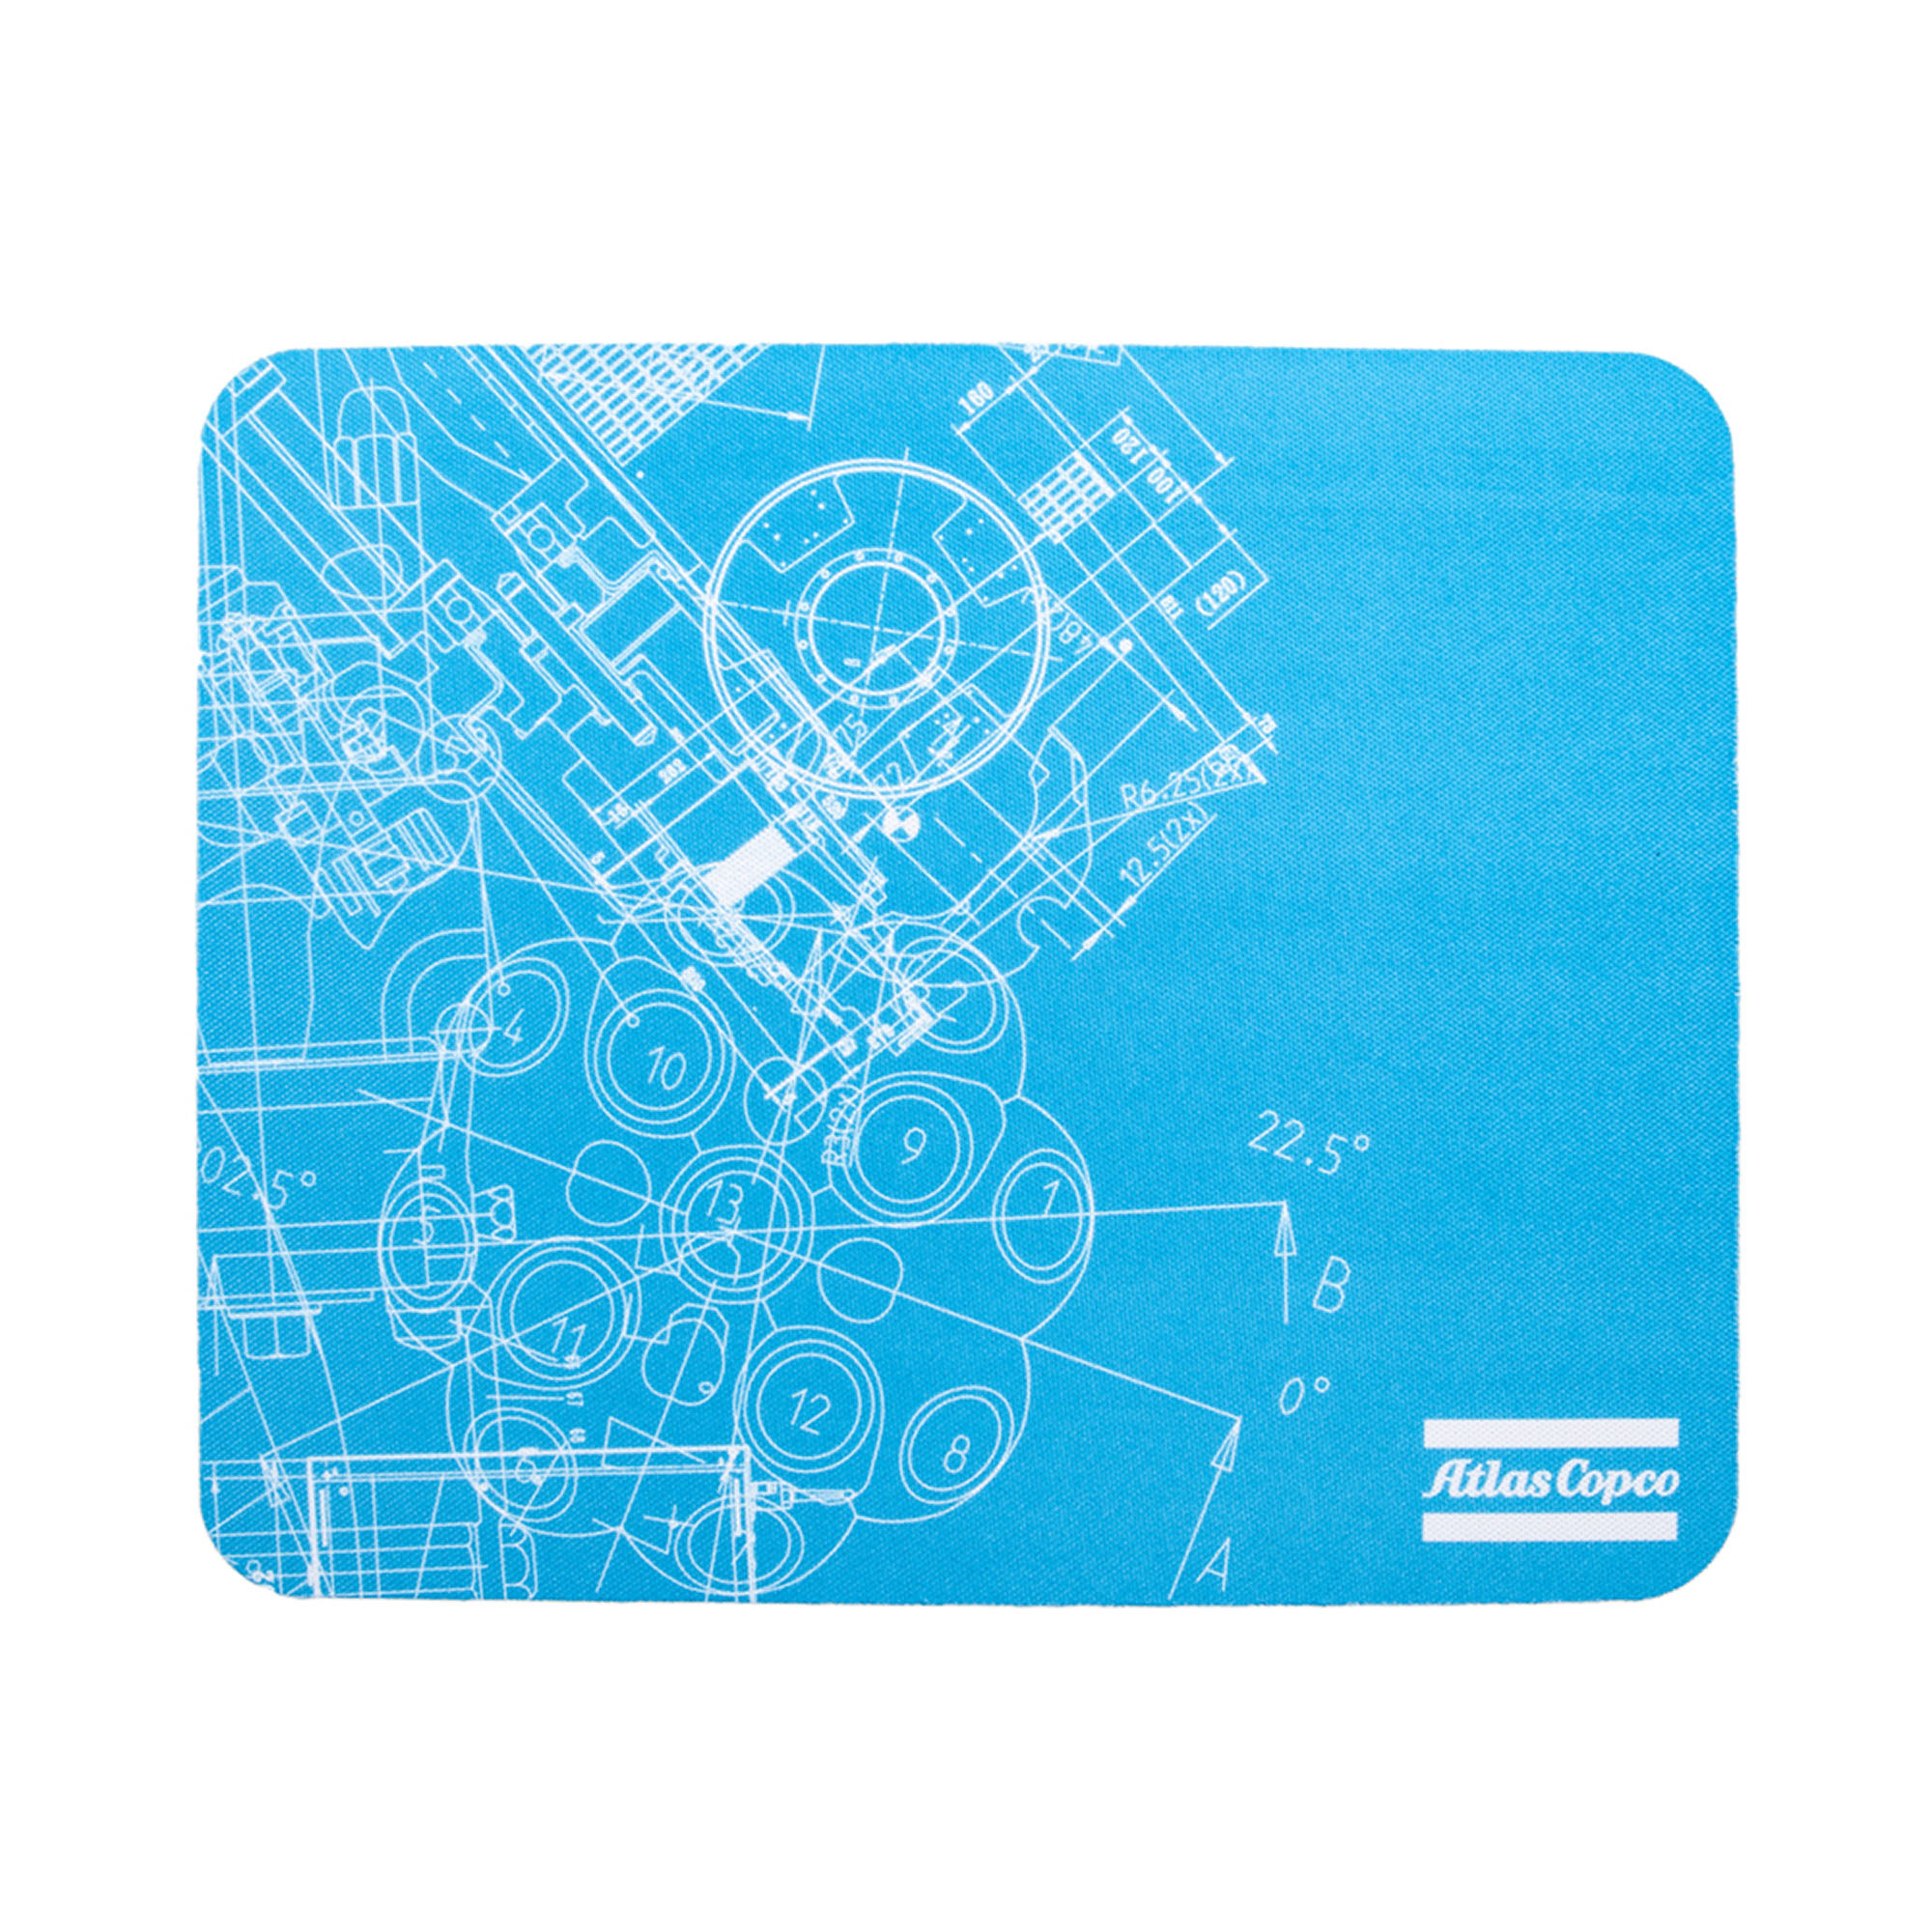 <p>A mouse pad made of degradable rubber, a more environmental friendly alternative. The BluePrint pattern is based on Atlas Copco´s key innovations. By merging original blueprints from all business areas, a unique graphic pattern has been created.</p>